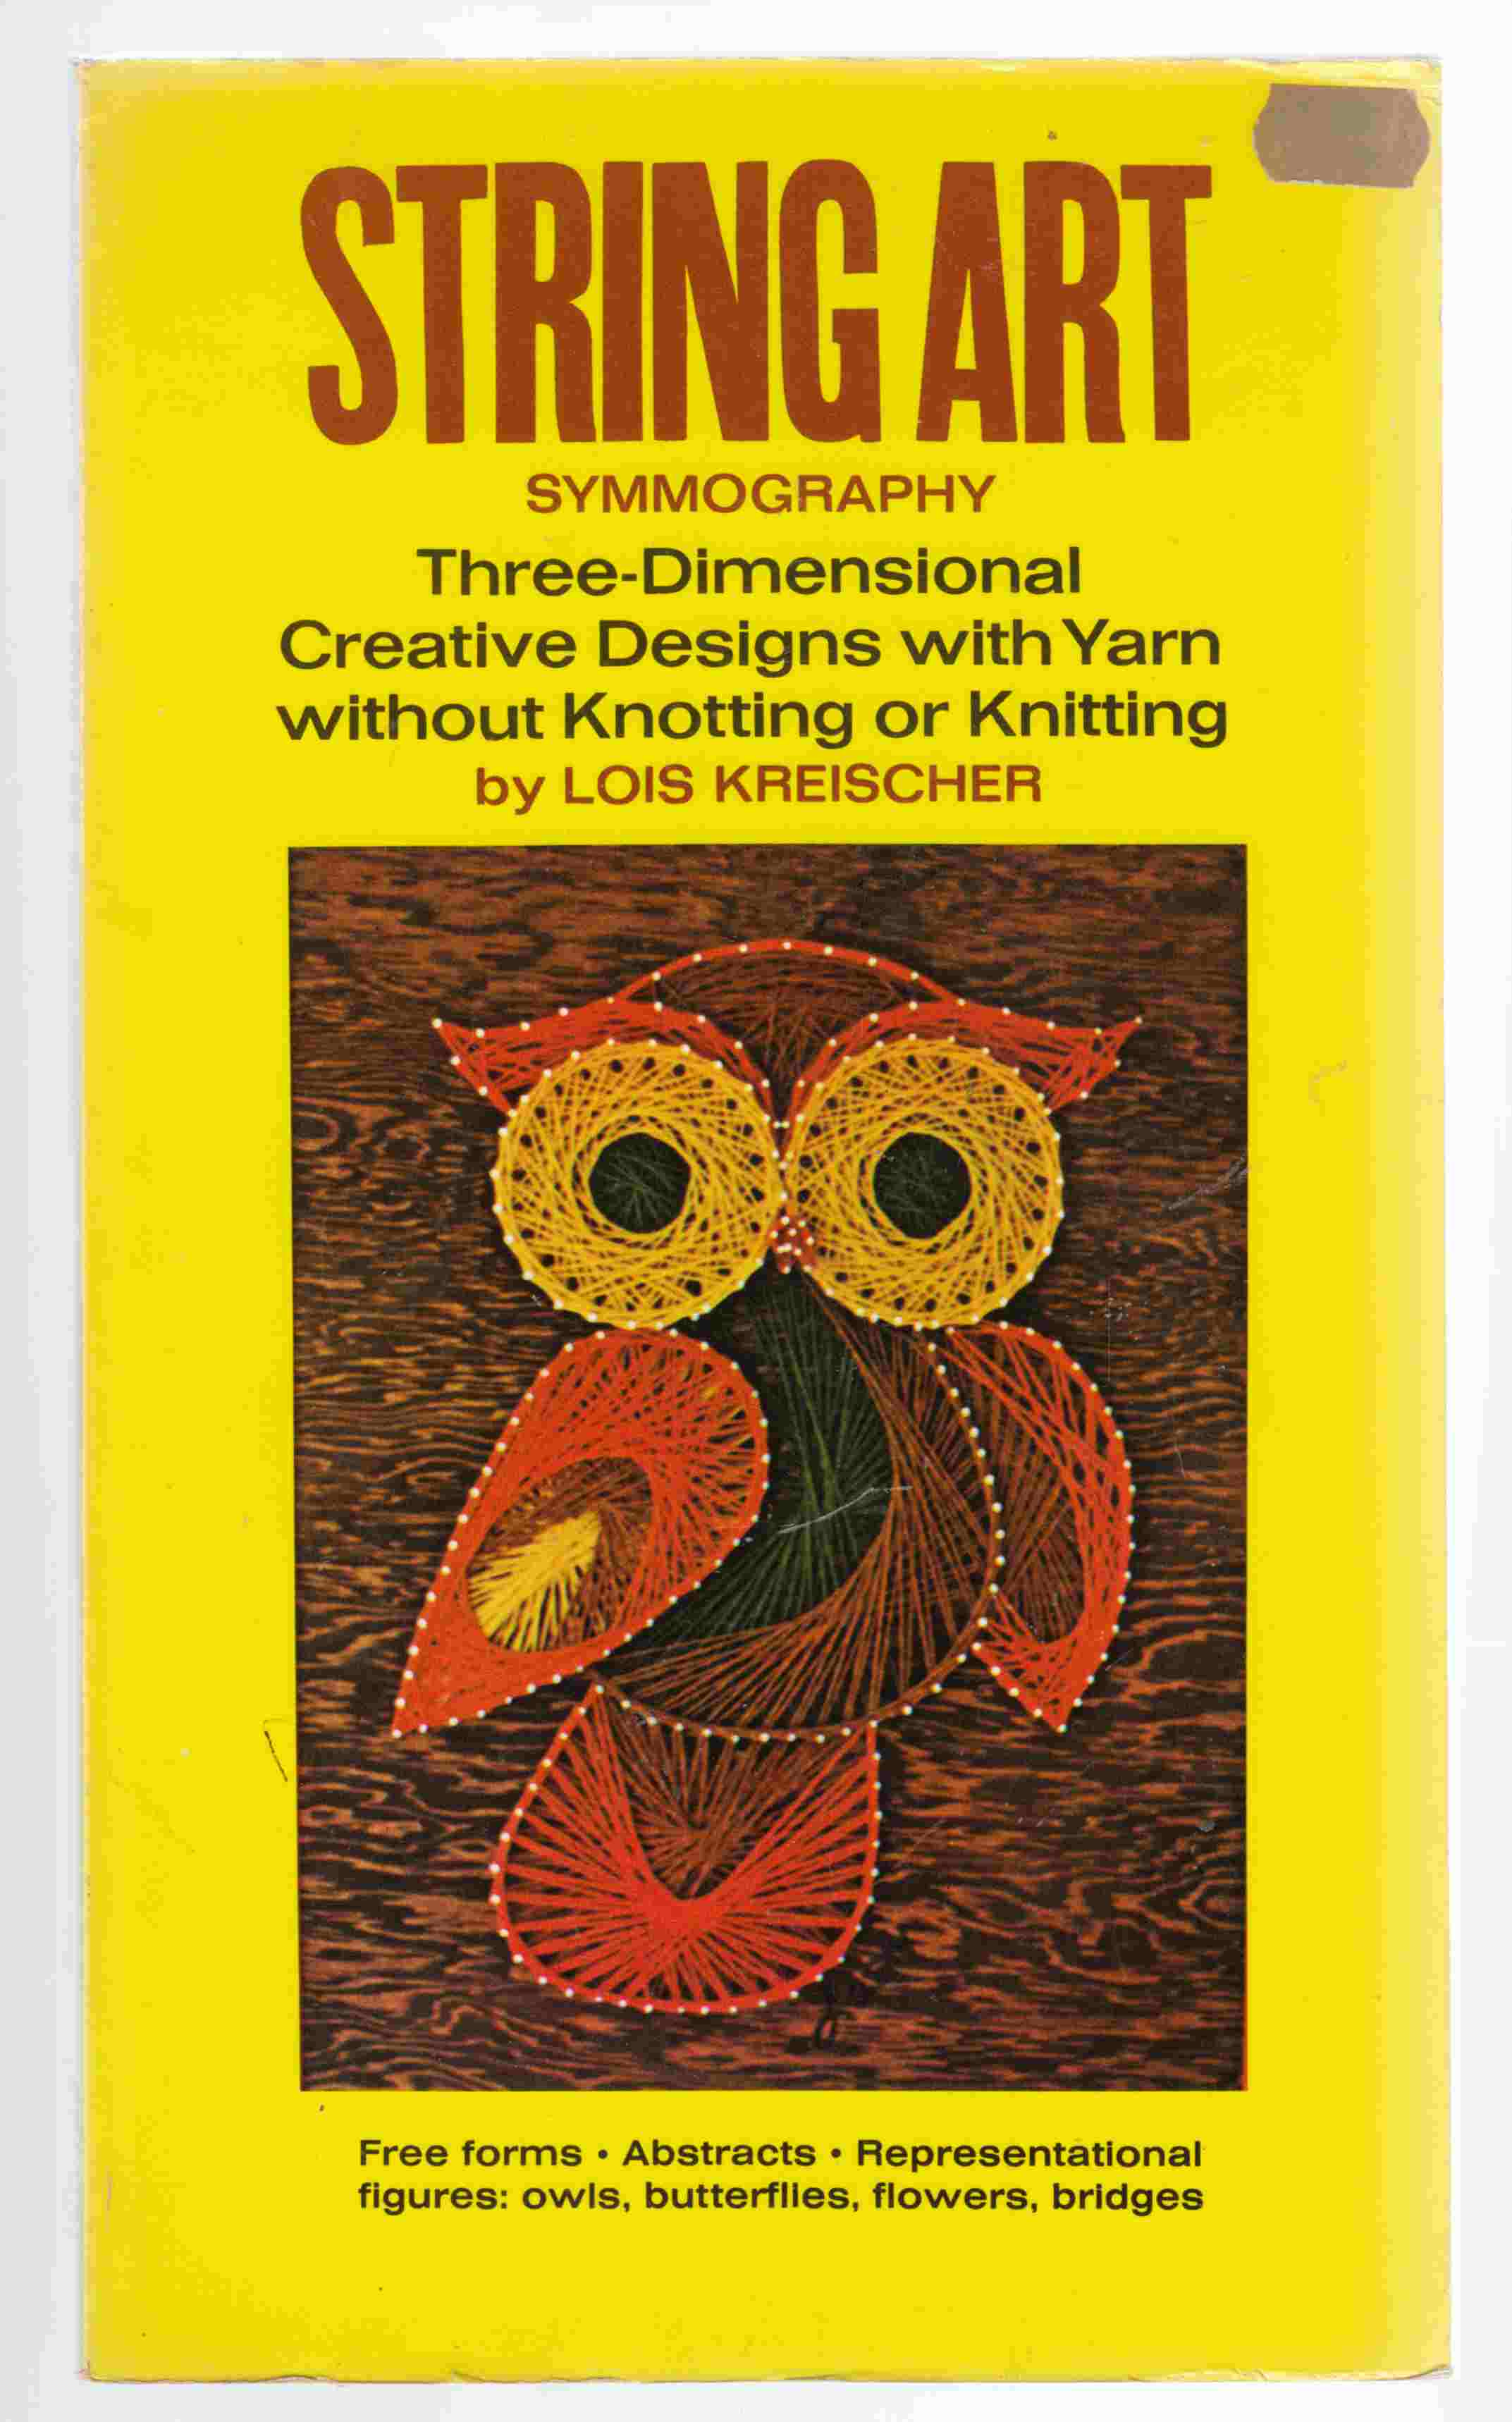 Image for String Art Symmography Three-Dimensional Creative Designs with Yarn Without Knotting or Knitting